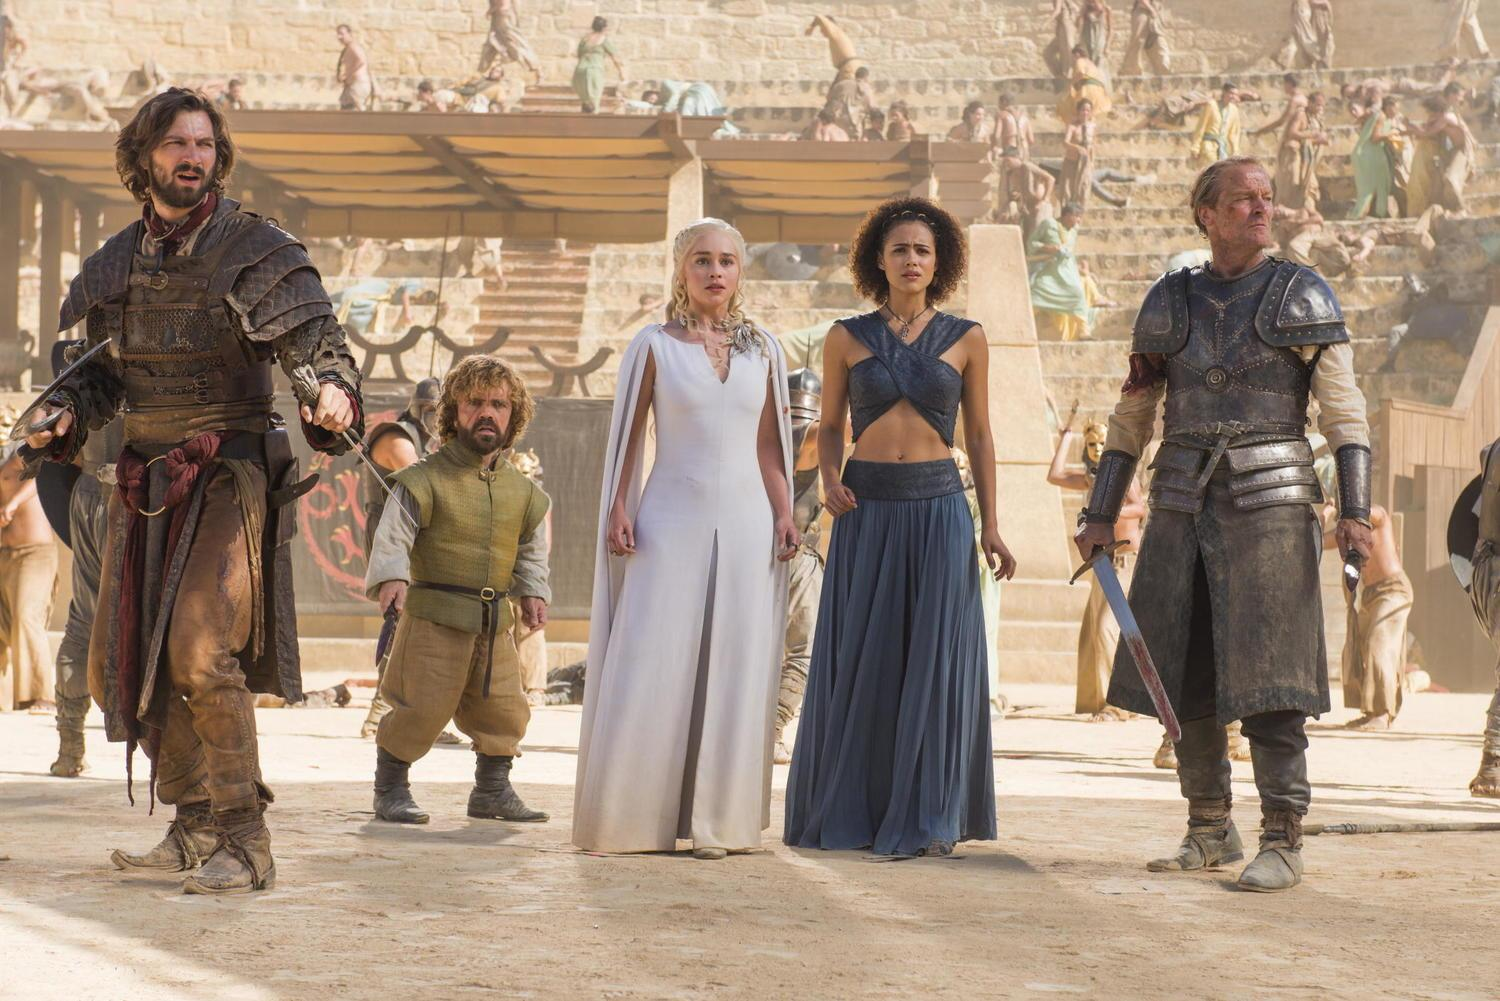 Game of Thrones Season 5 Episode 9 – The Dance of Dragons